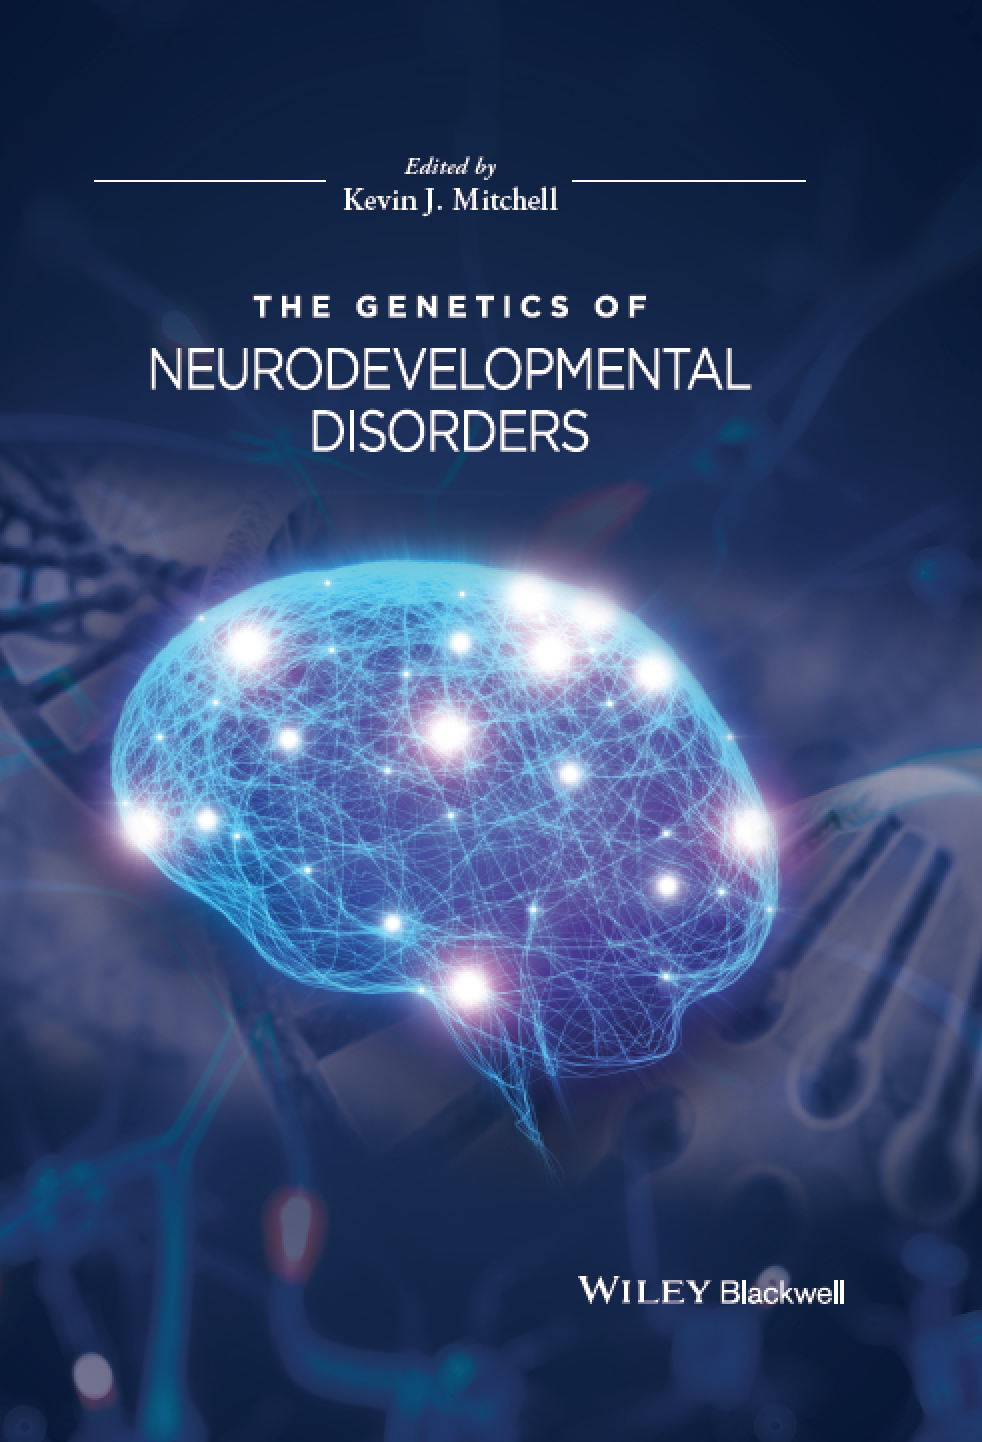 The Genetics Of Neurodevelopmental Disorders Wiring Brain Is A New Book That Will Be Published By Wiley In 2015 It Due Out August Europe And September